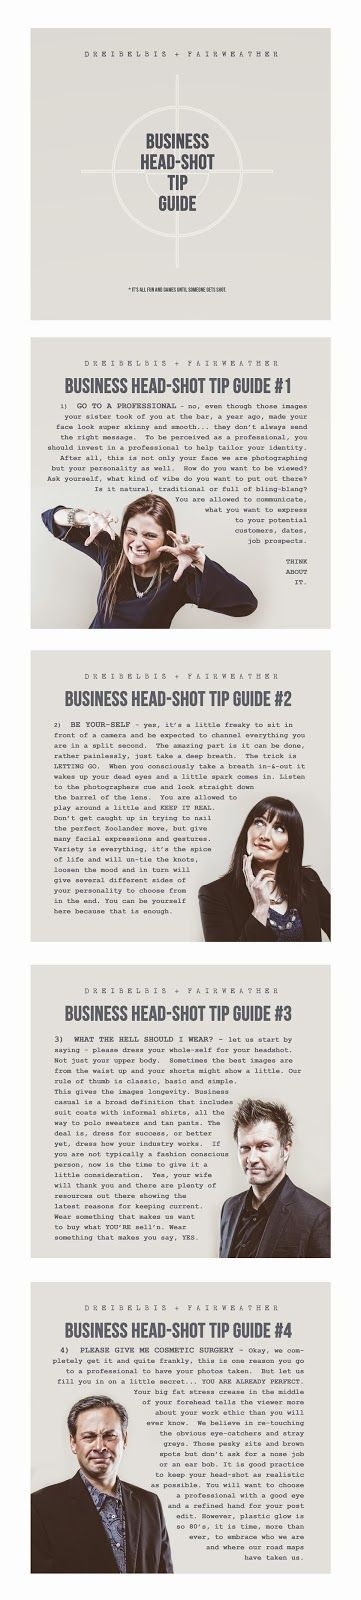 DREIBELBIS + FAIRWEATHER: Business Head-Shot Tip Guide - photography